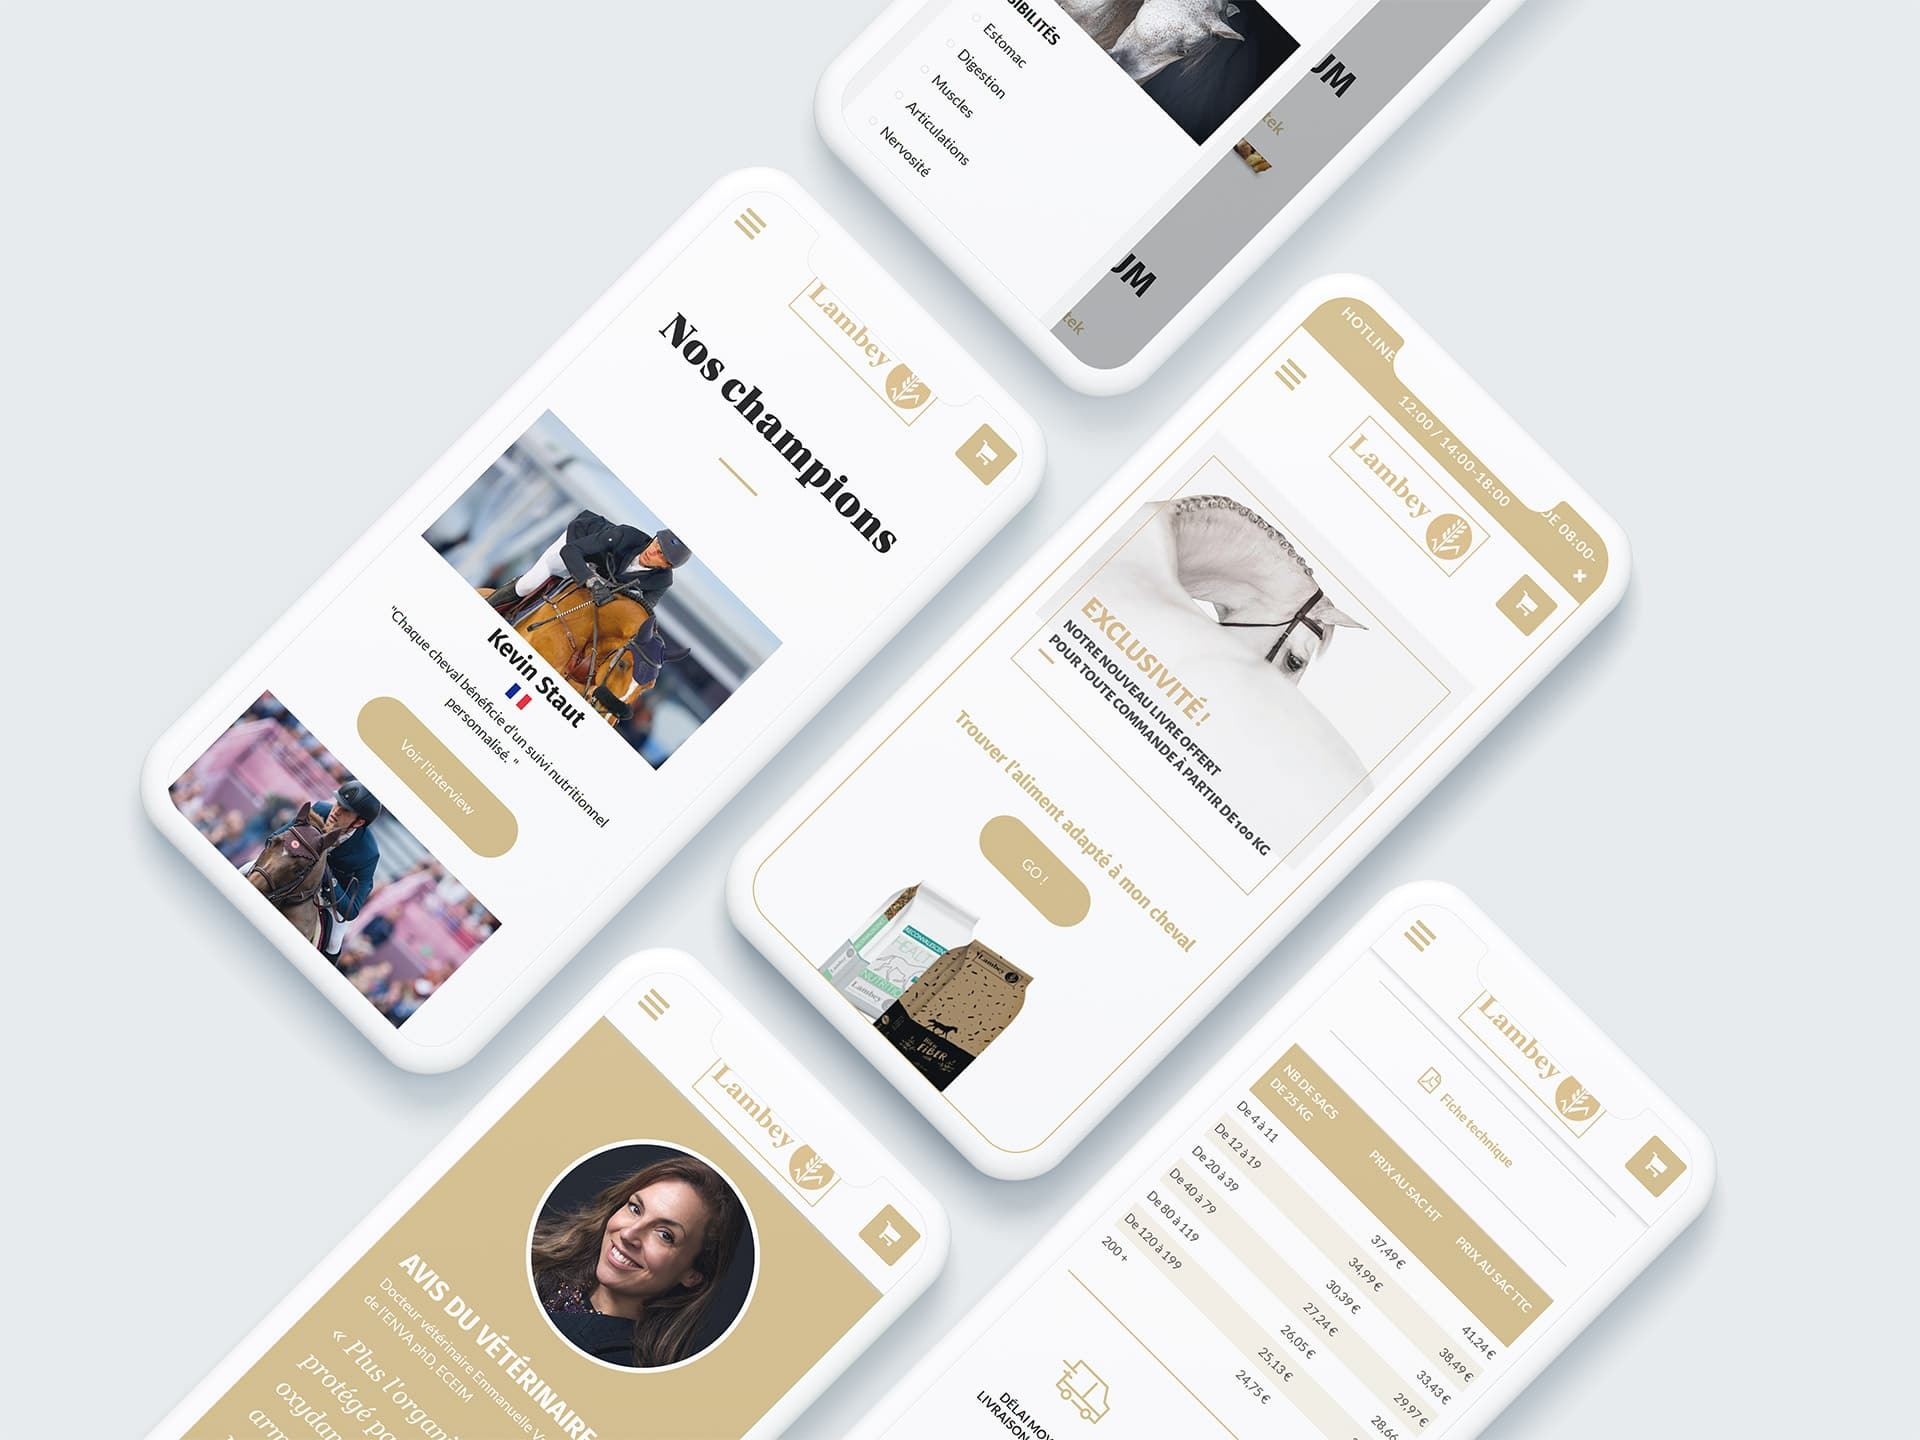 Responsive design supports mobiles